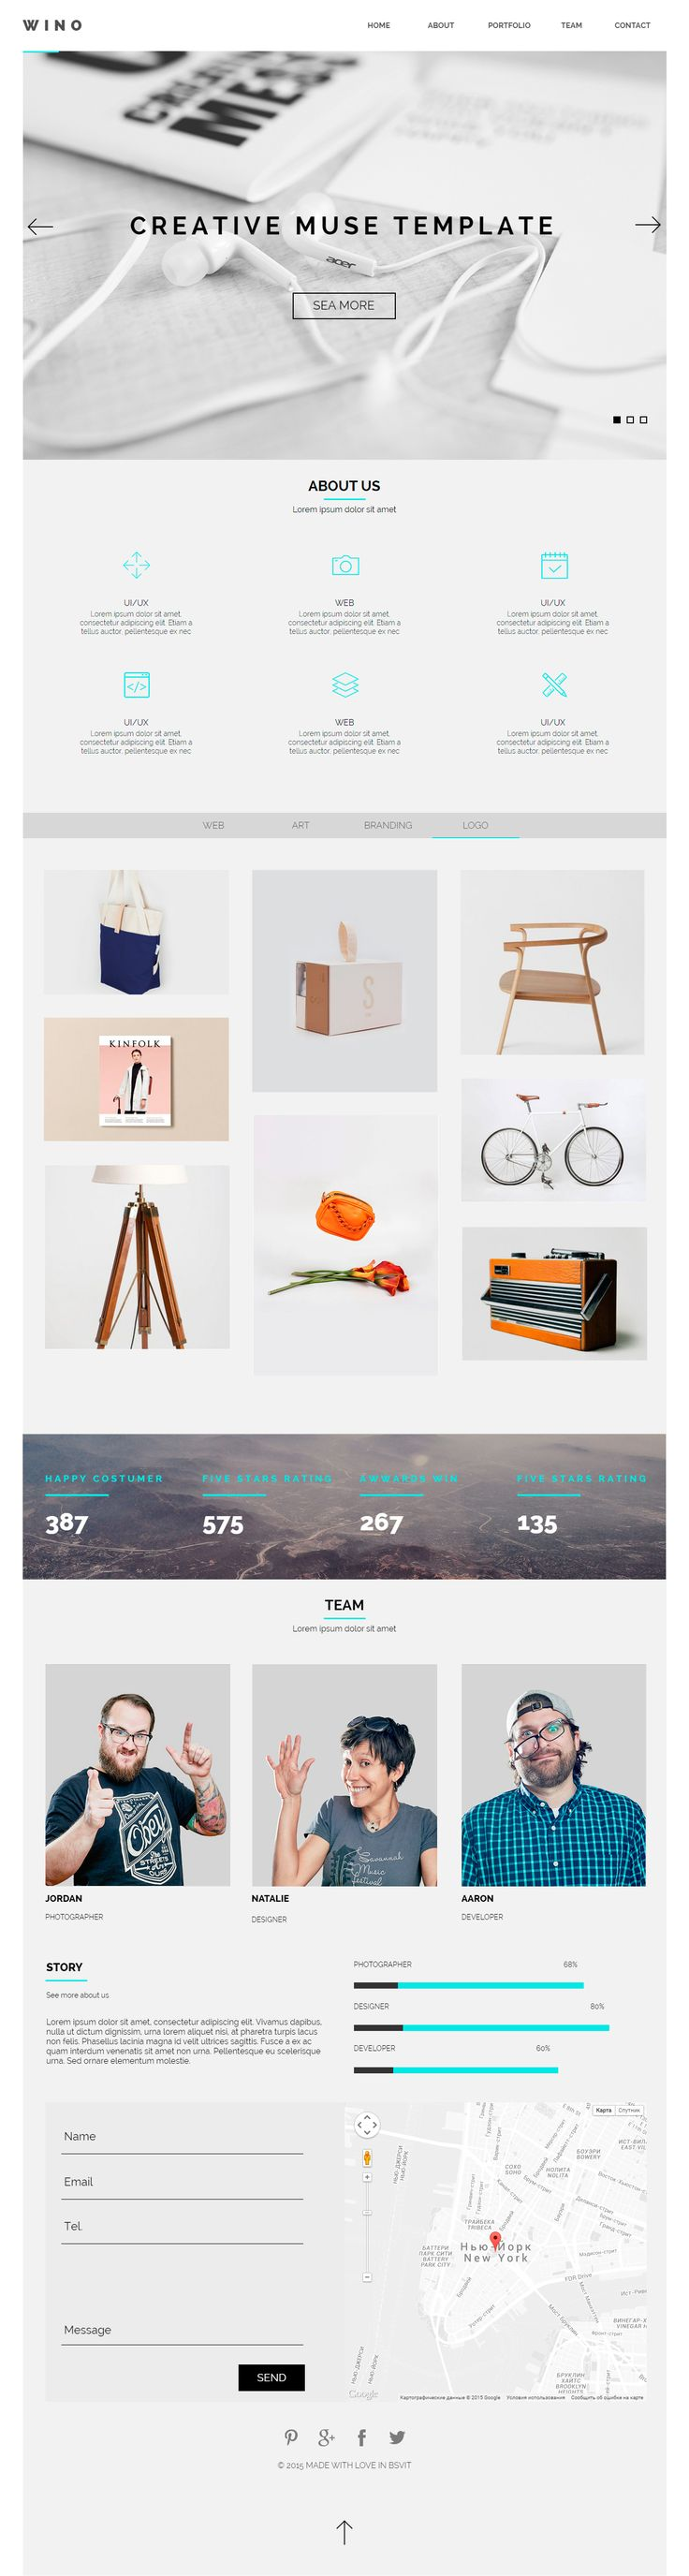 Carpet cleaning receipt joy studio design gallery best design - Creative Multi Purpose Muse Template Wino Is A Modern And Clean Adobe Muse Template